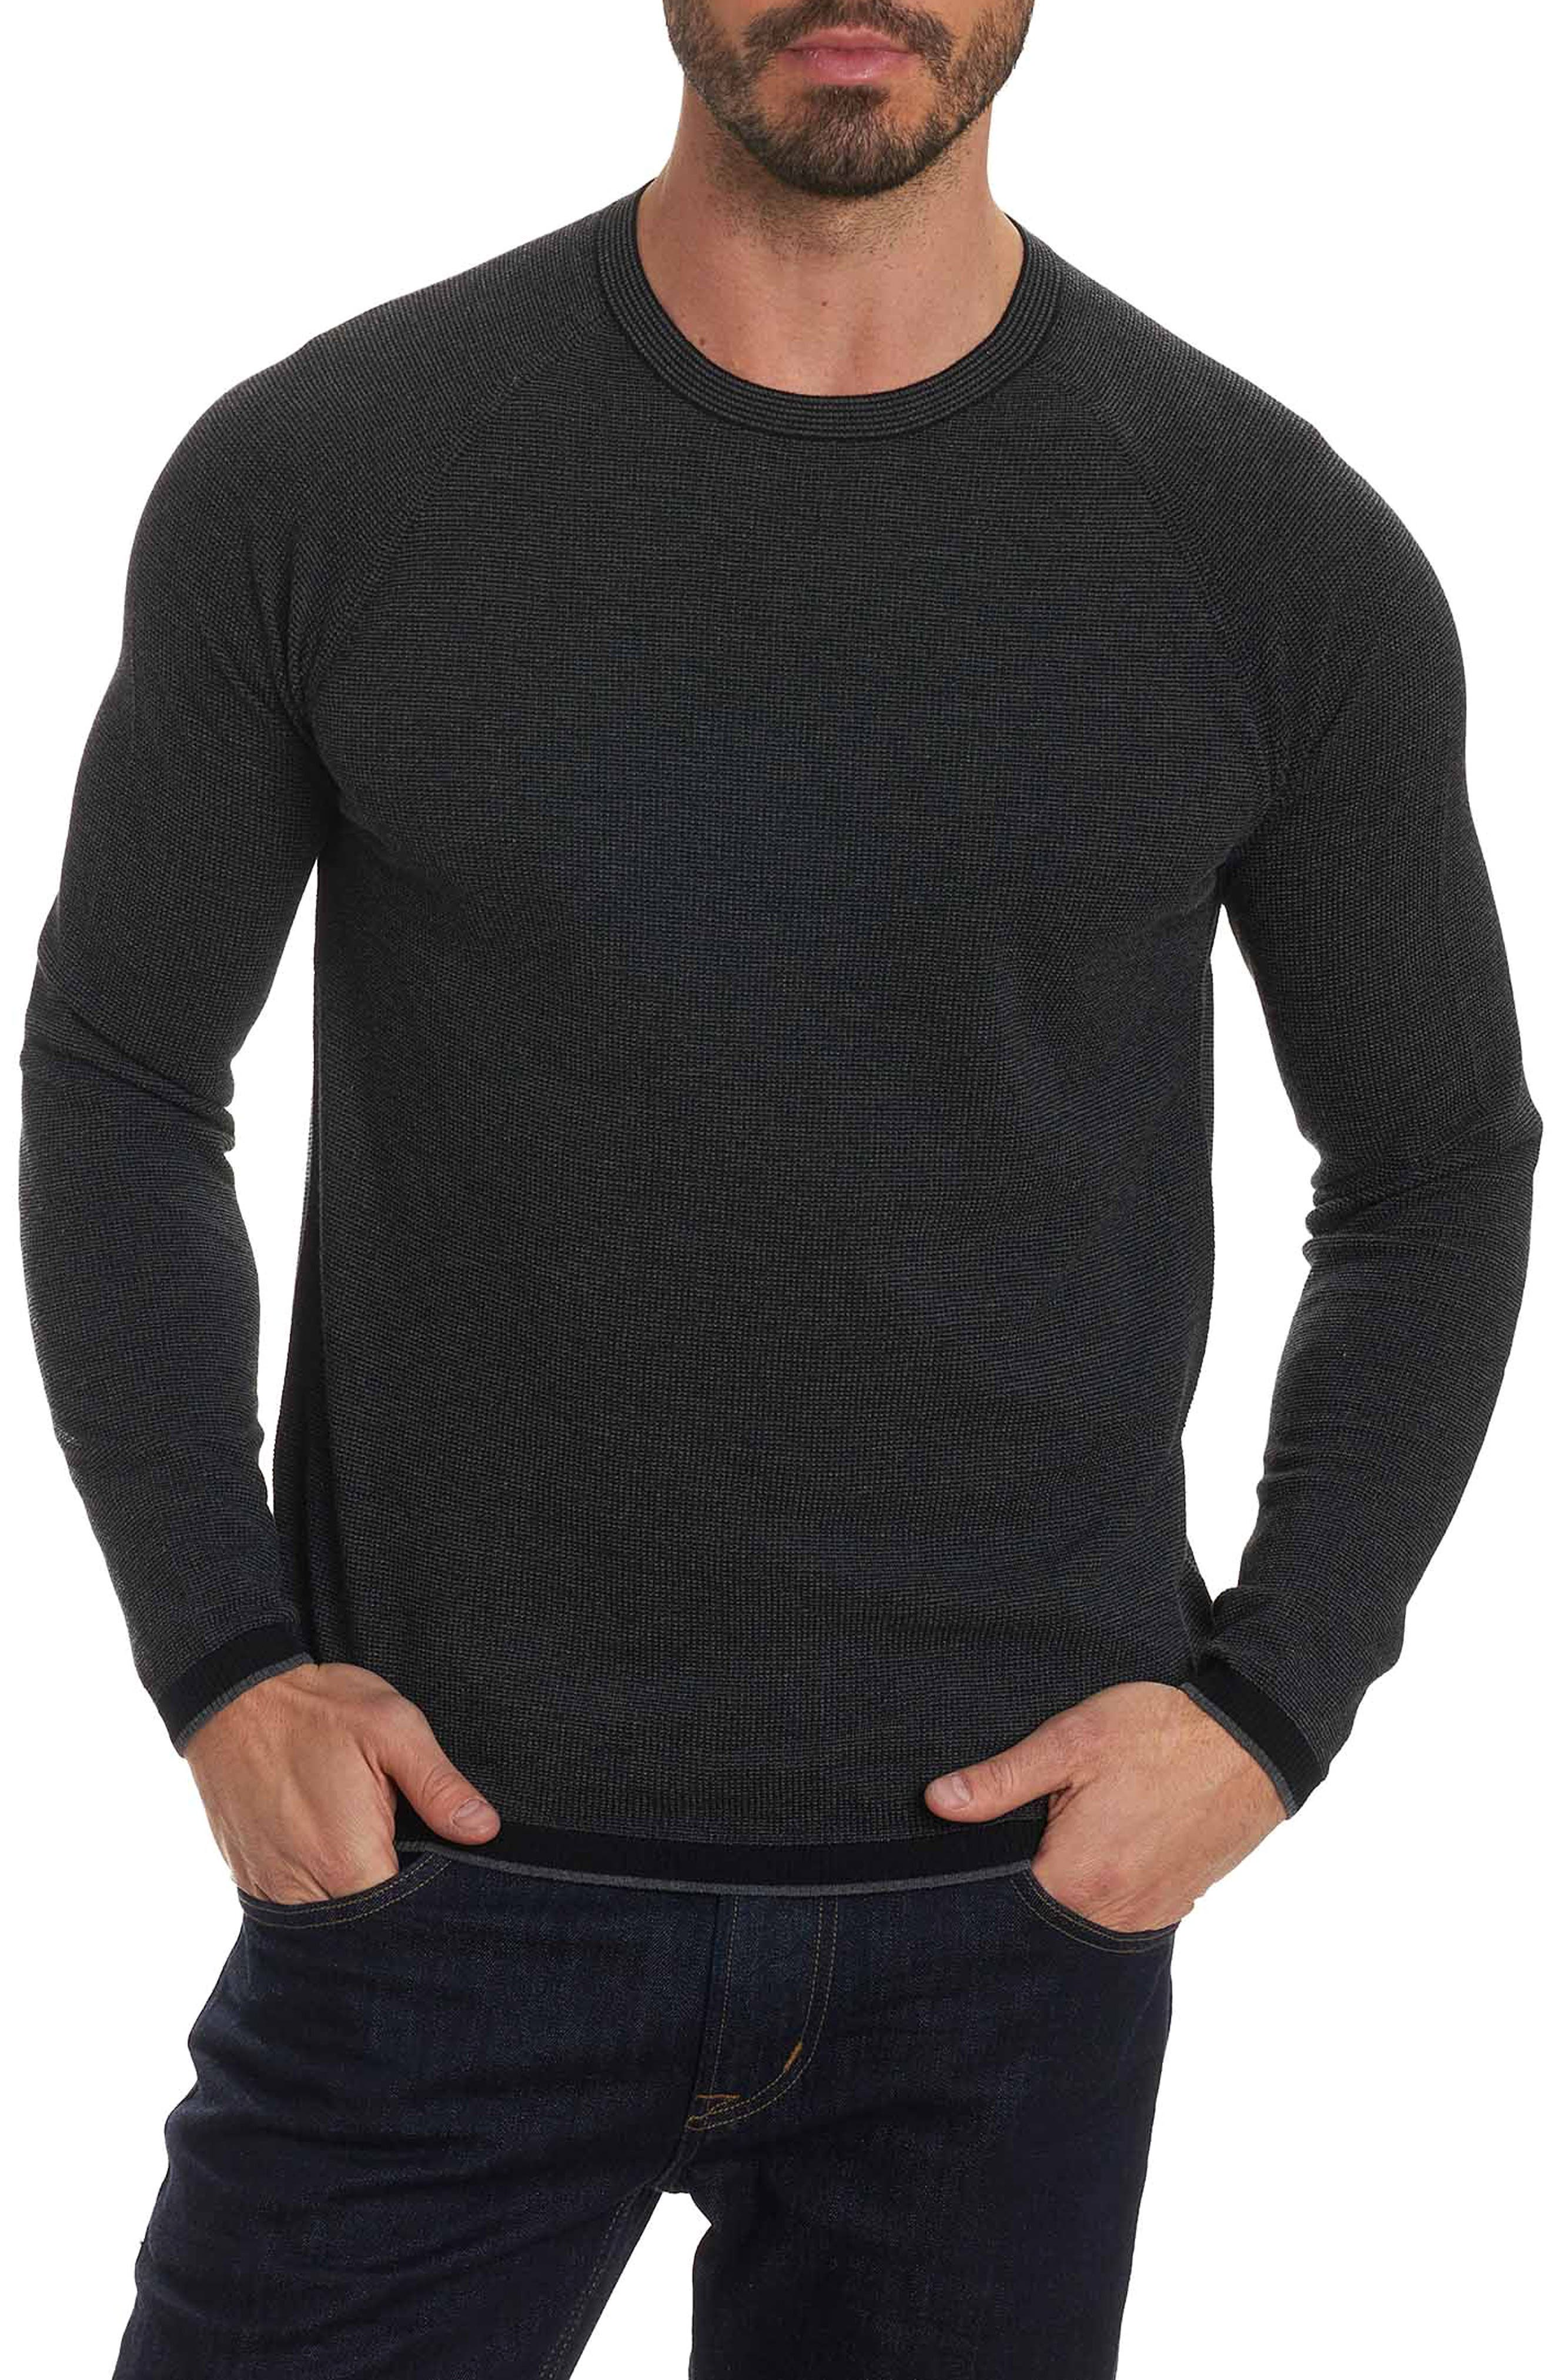 Ray Brook Wool Blend Sweater,                         Main,                         color, 001